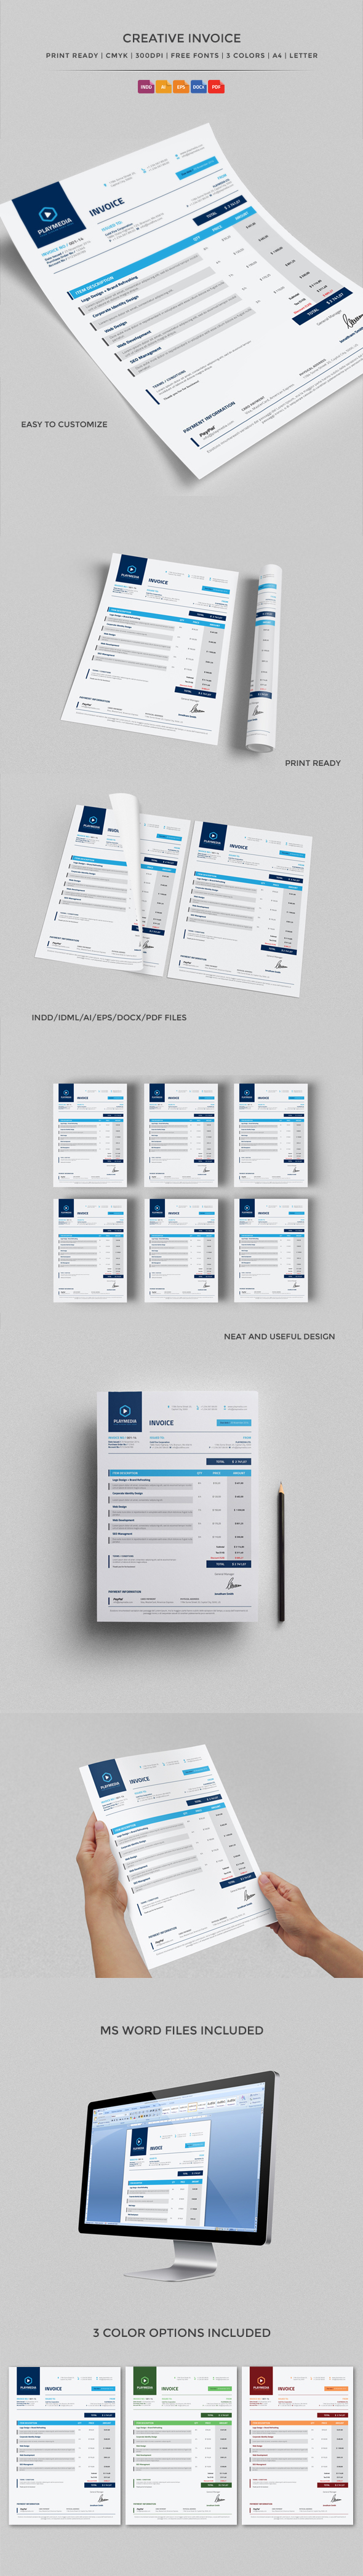 bill black blue clean creative customizable elegant Excel excel invoice green icons illustrator invoice indesign invoice invoice Invoice Template